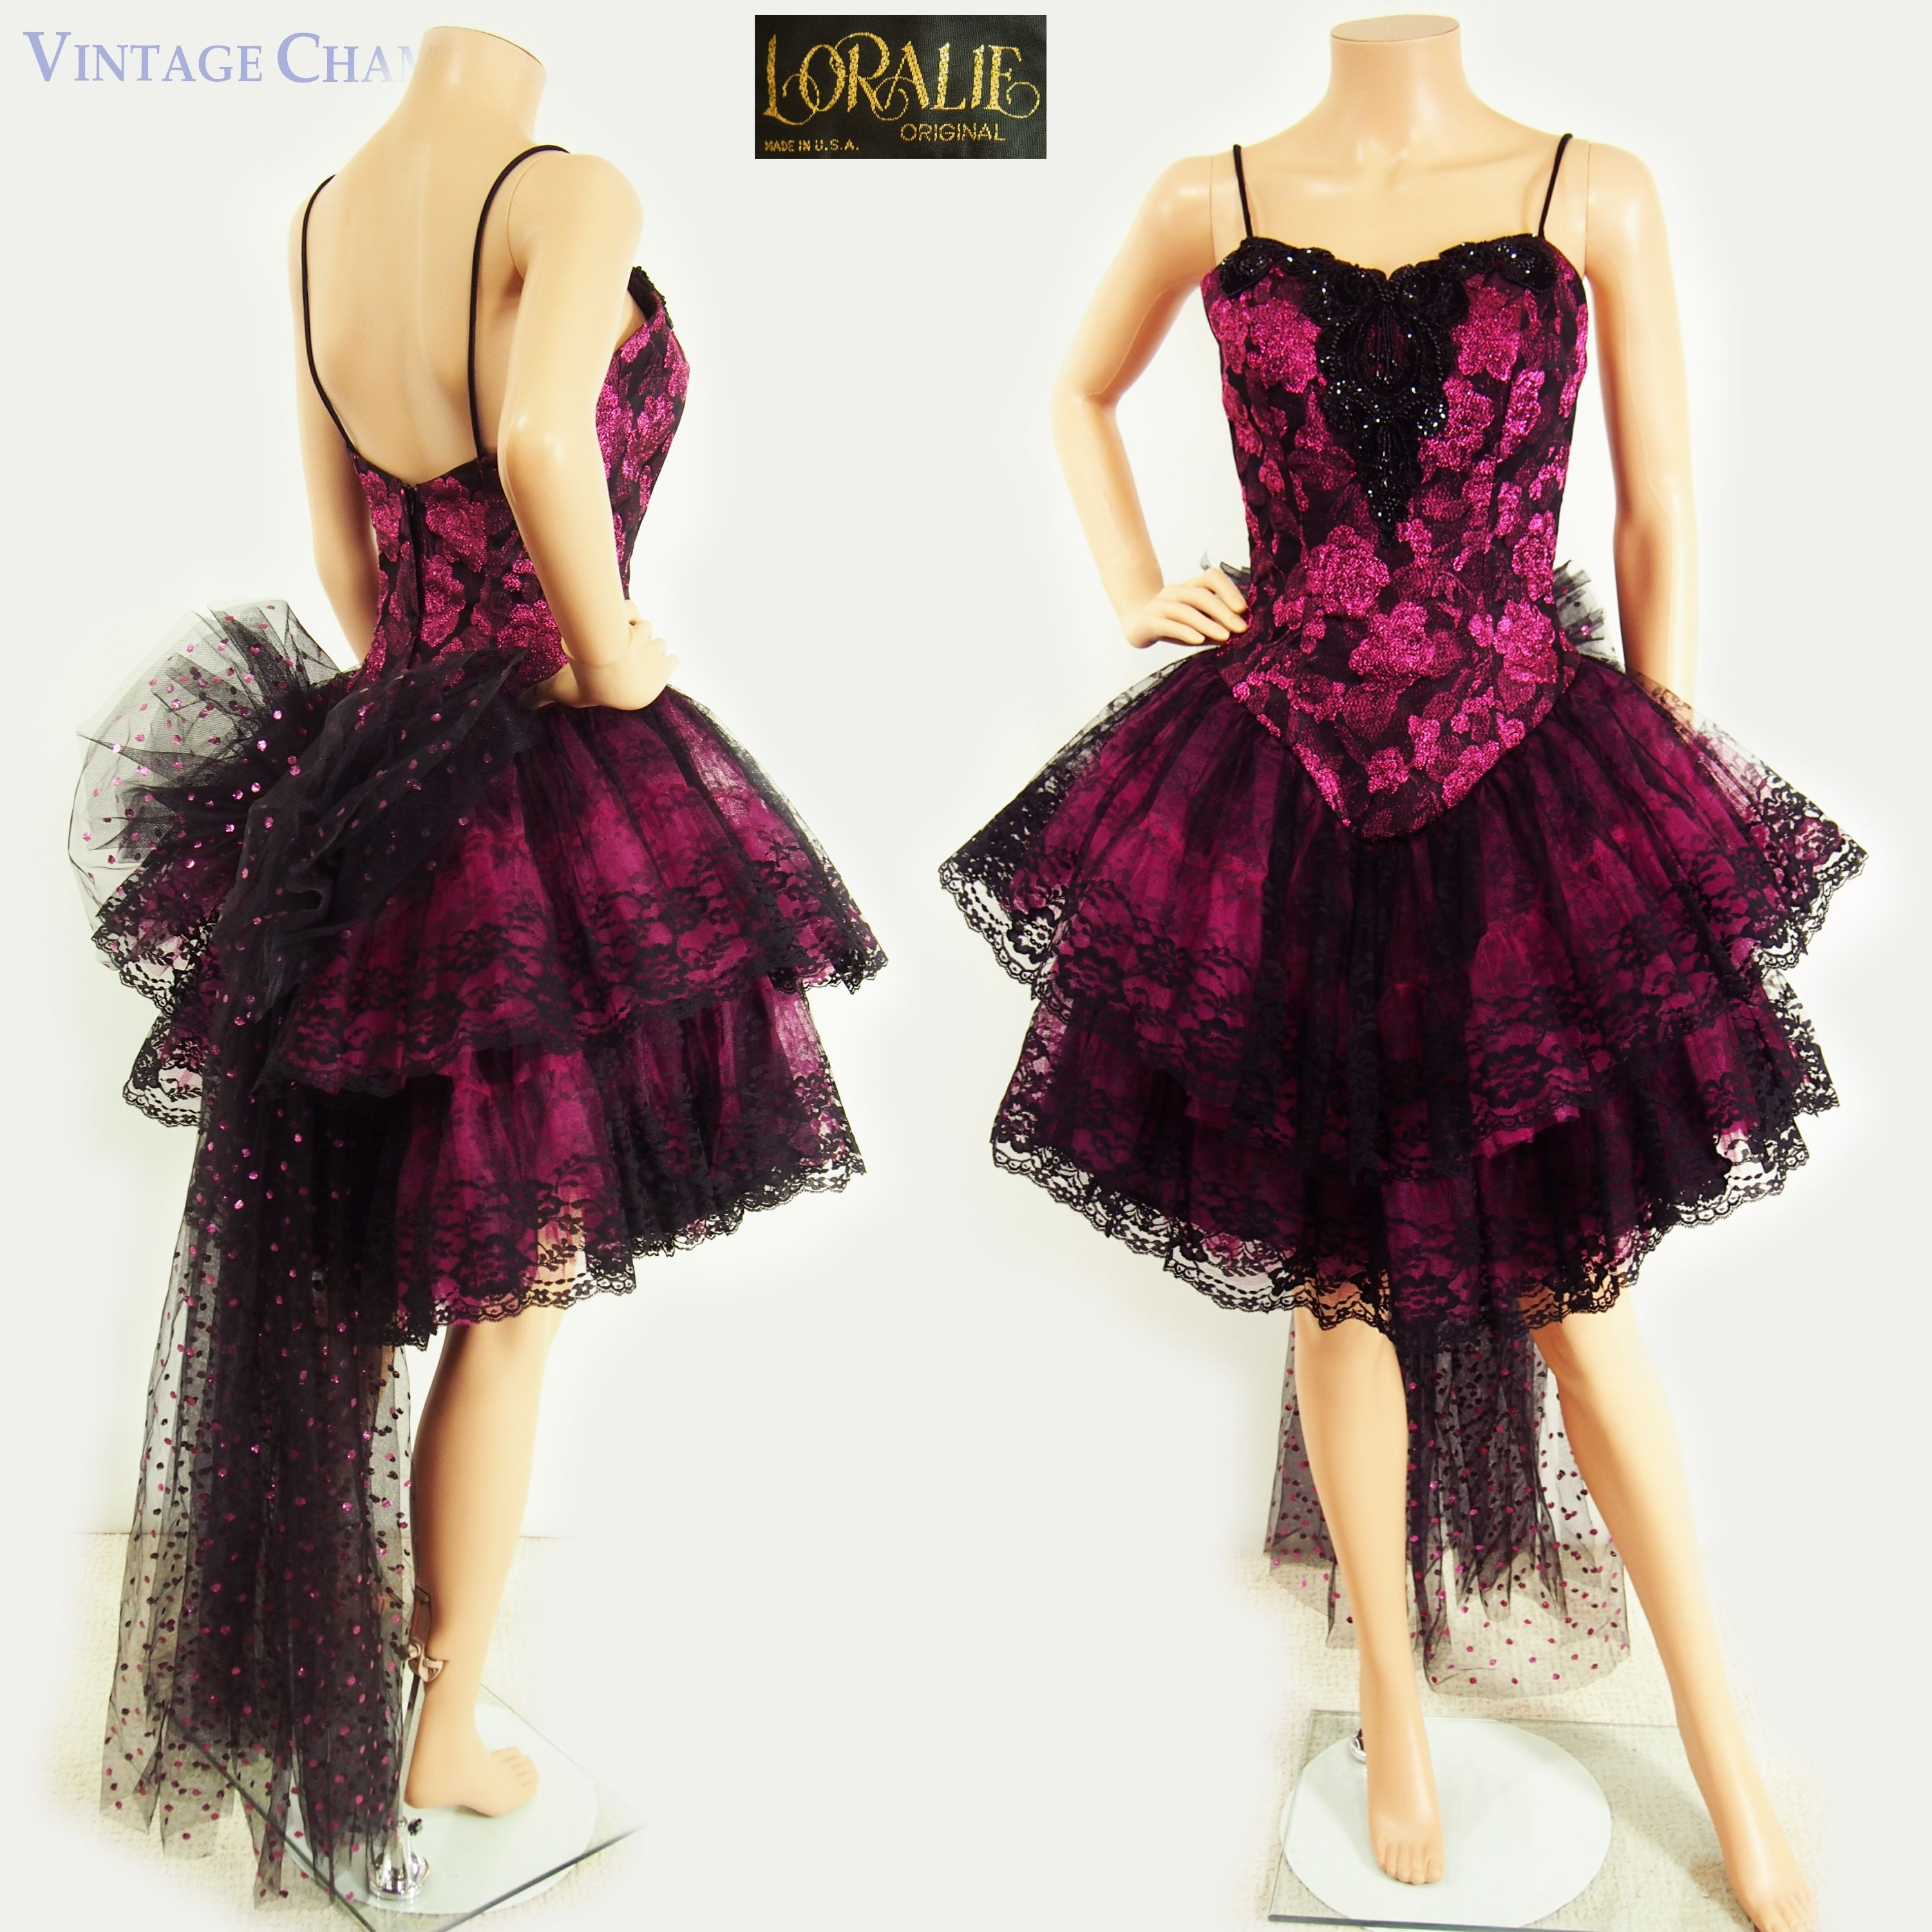 Vintage us loralie fuchsia and black lace mini prom dress with